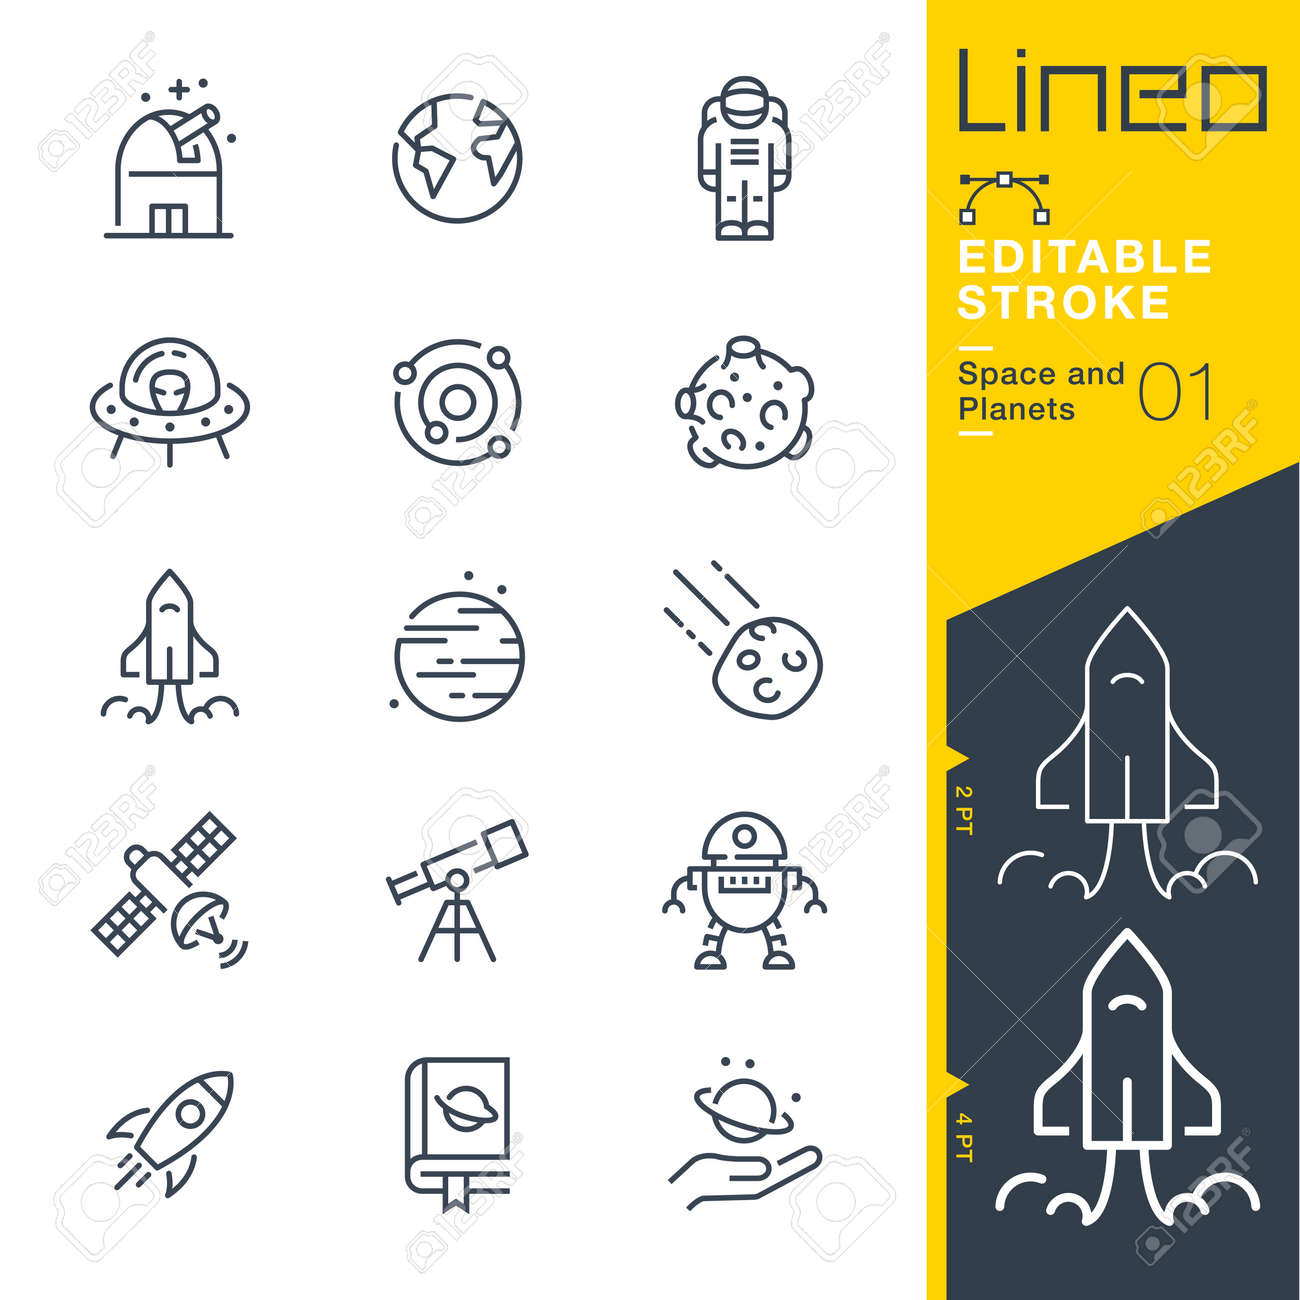 Lineo Editable Stroke - Space and Planets line icons - 102273164